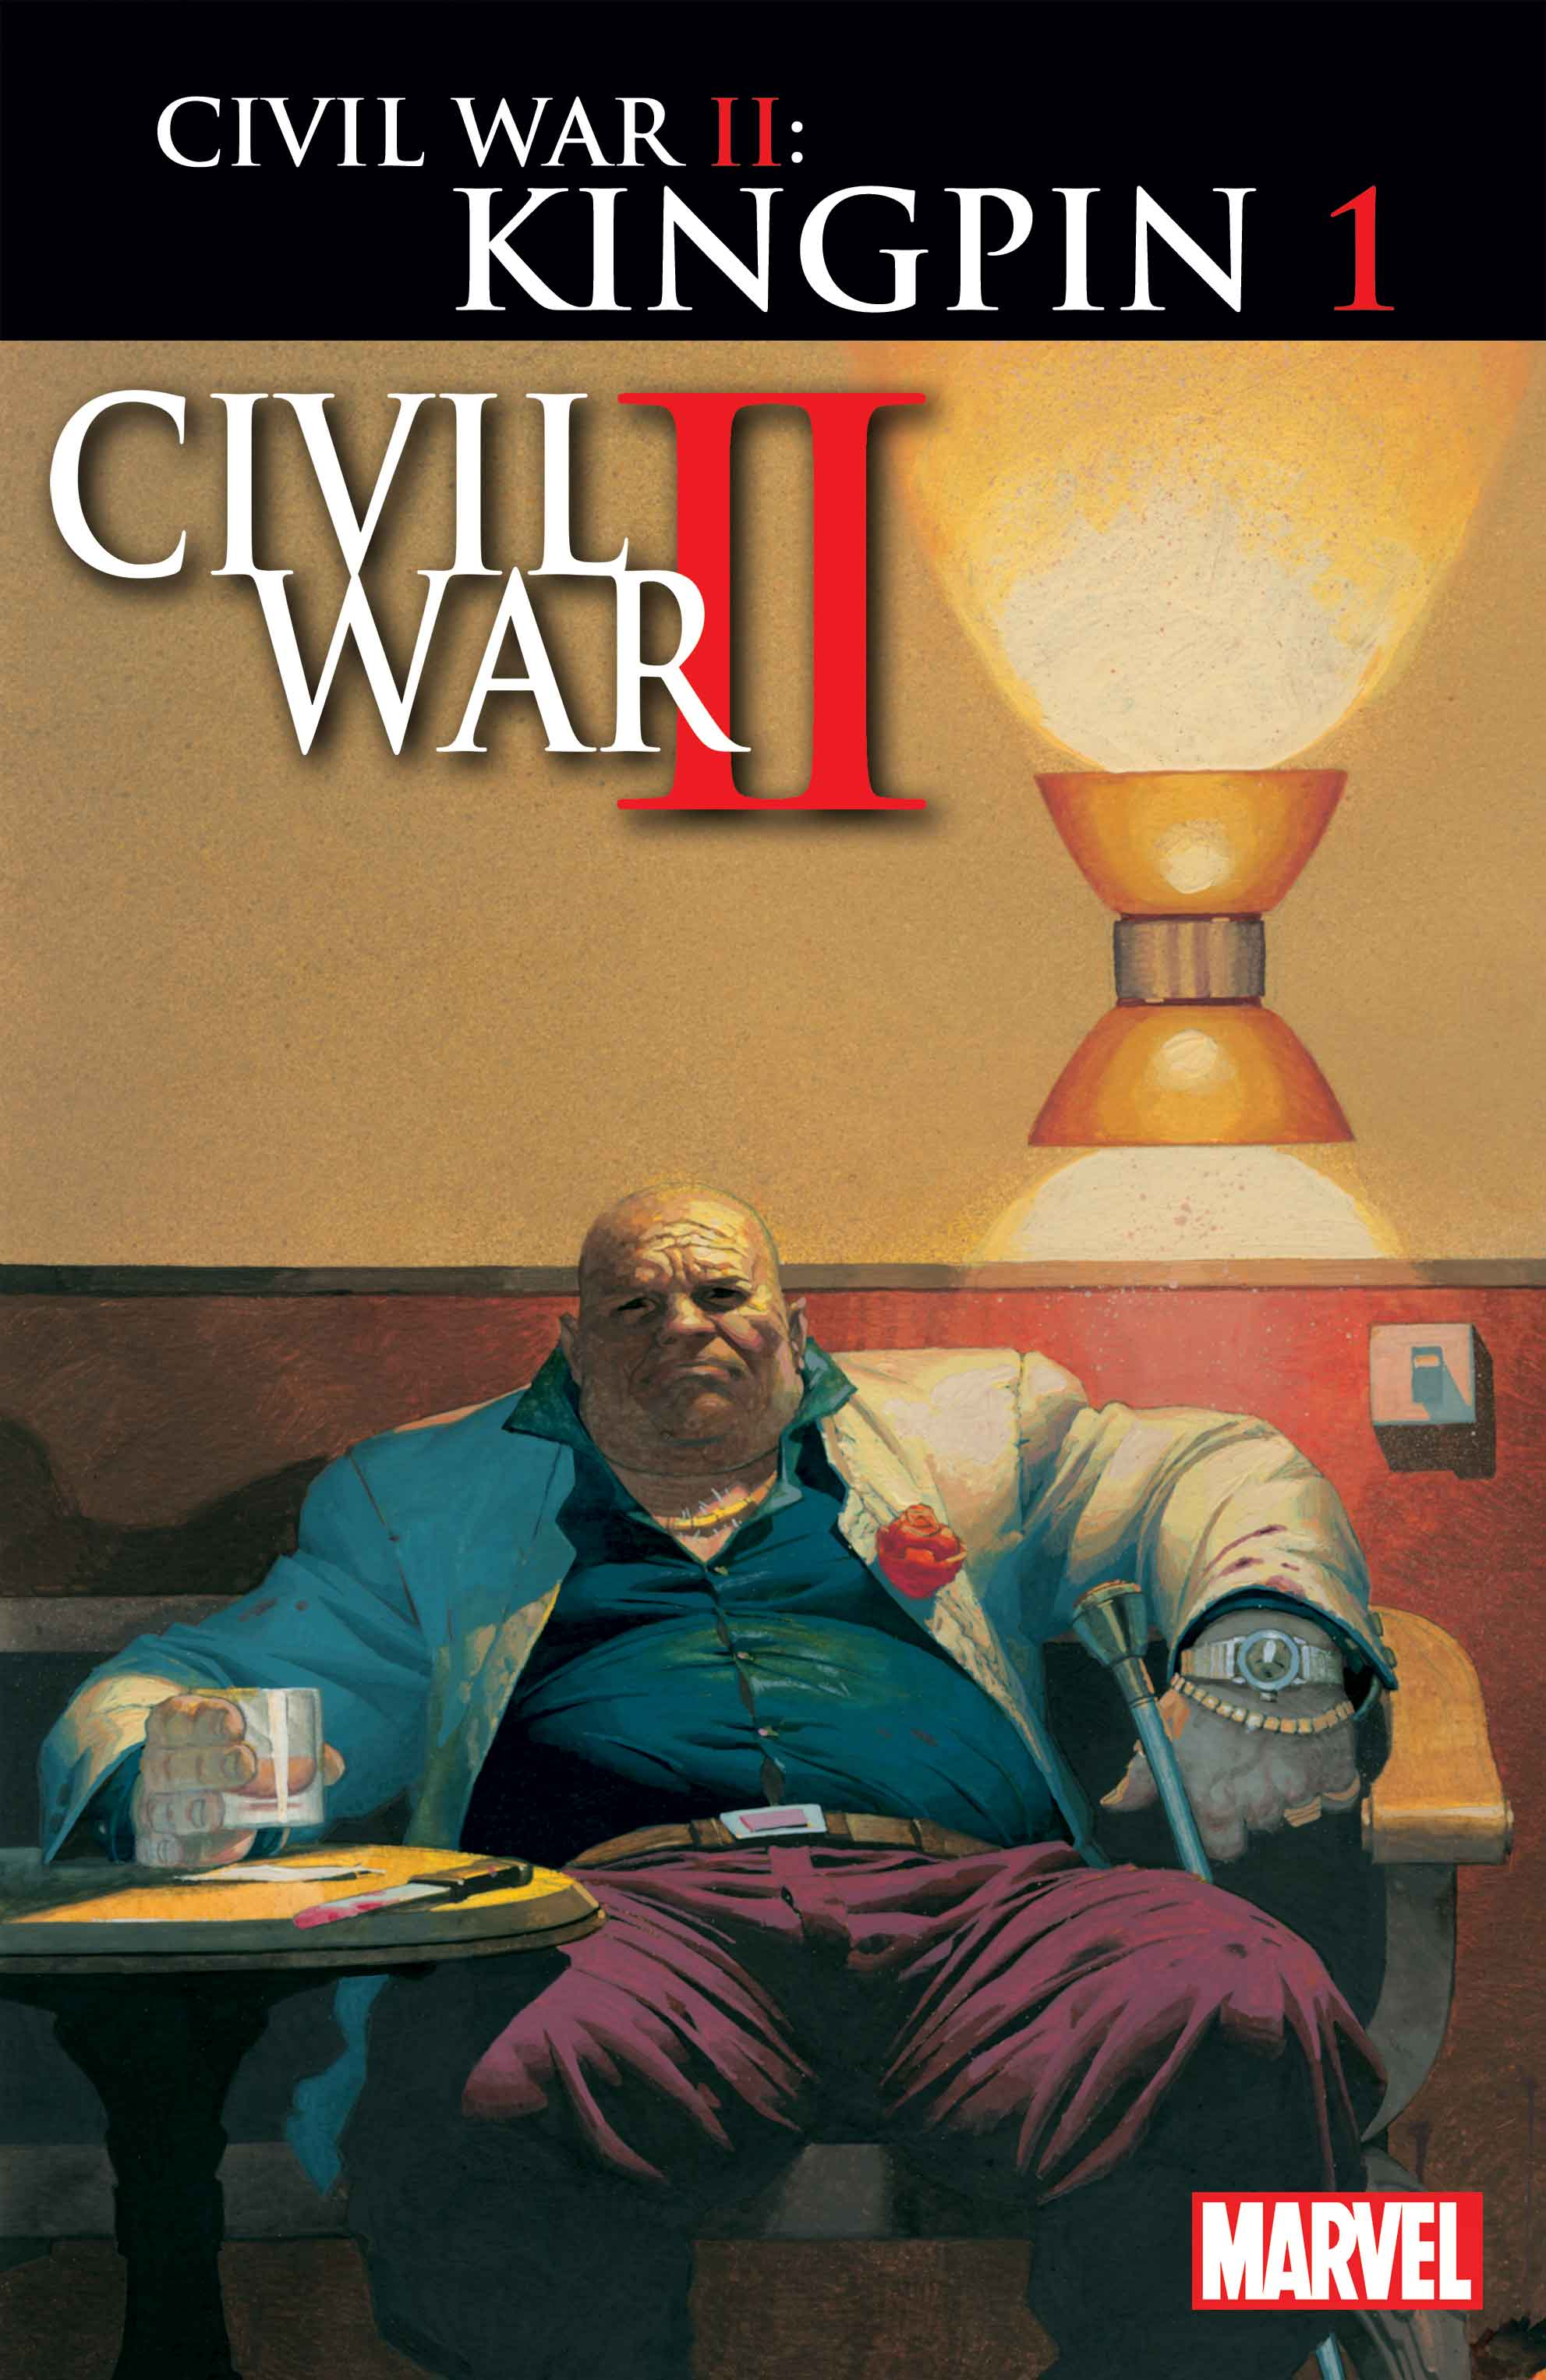 Variant Cover by Esad Ribic